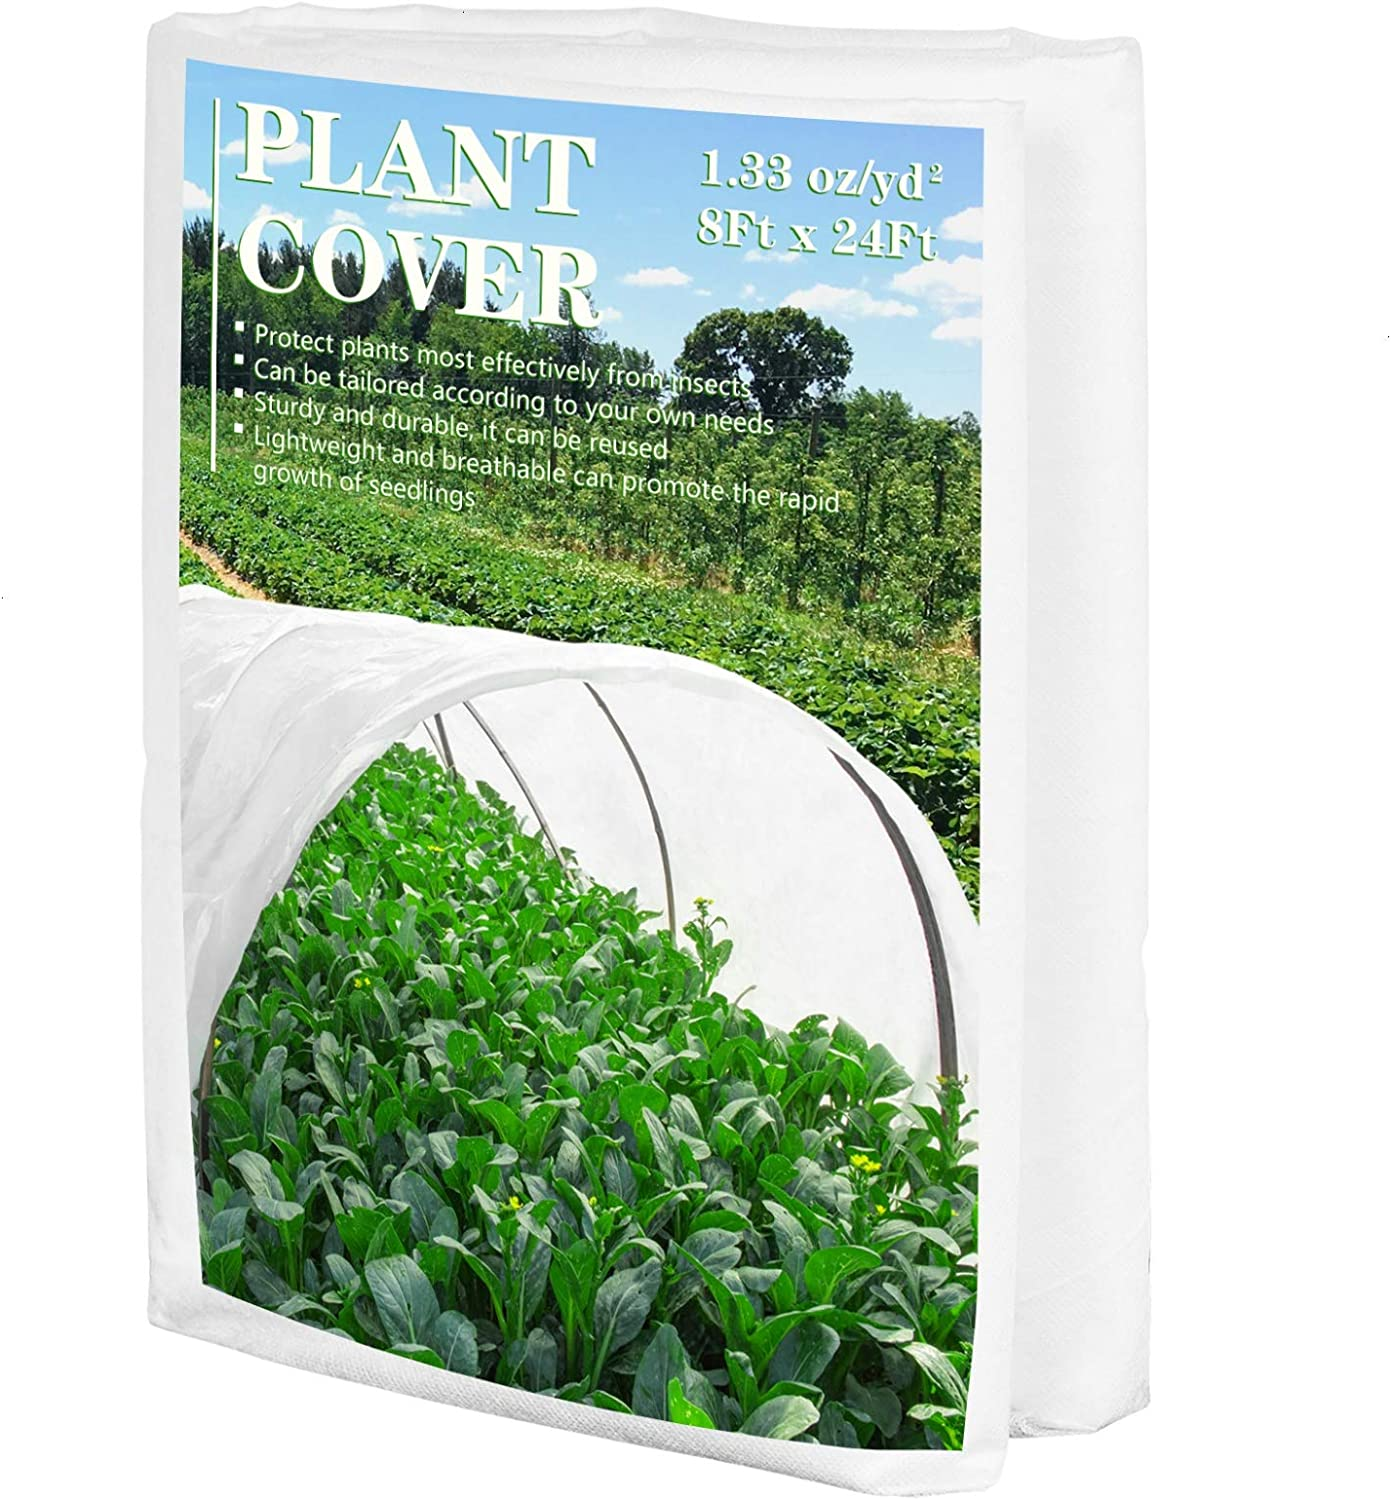 AQUEENLY Plant Covers Freeze Protection, 8x24 FT Garden Bed Cover, Row Covers for Vegetables in 1.33 oz/yd²